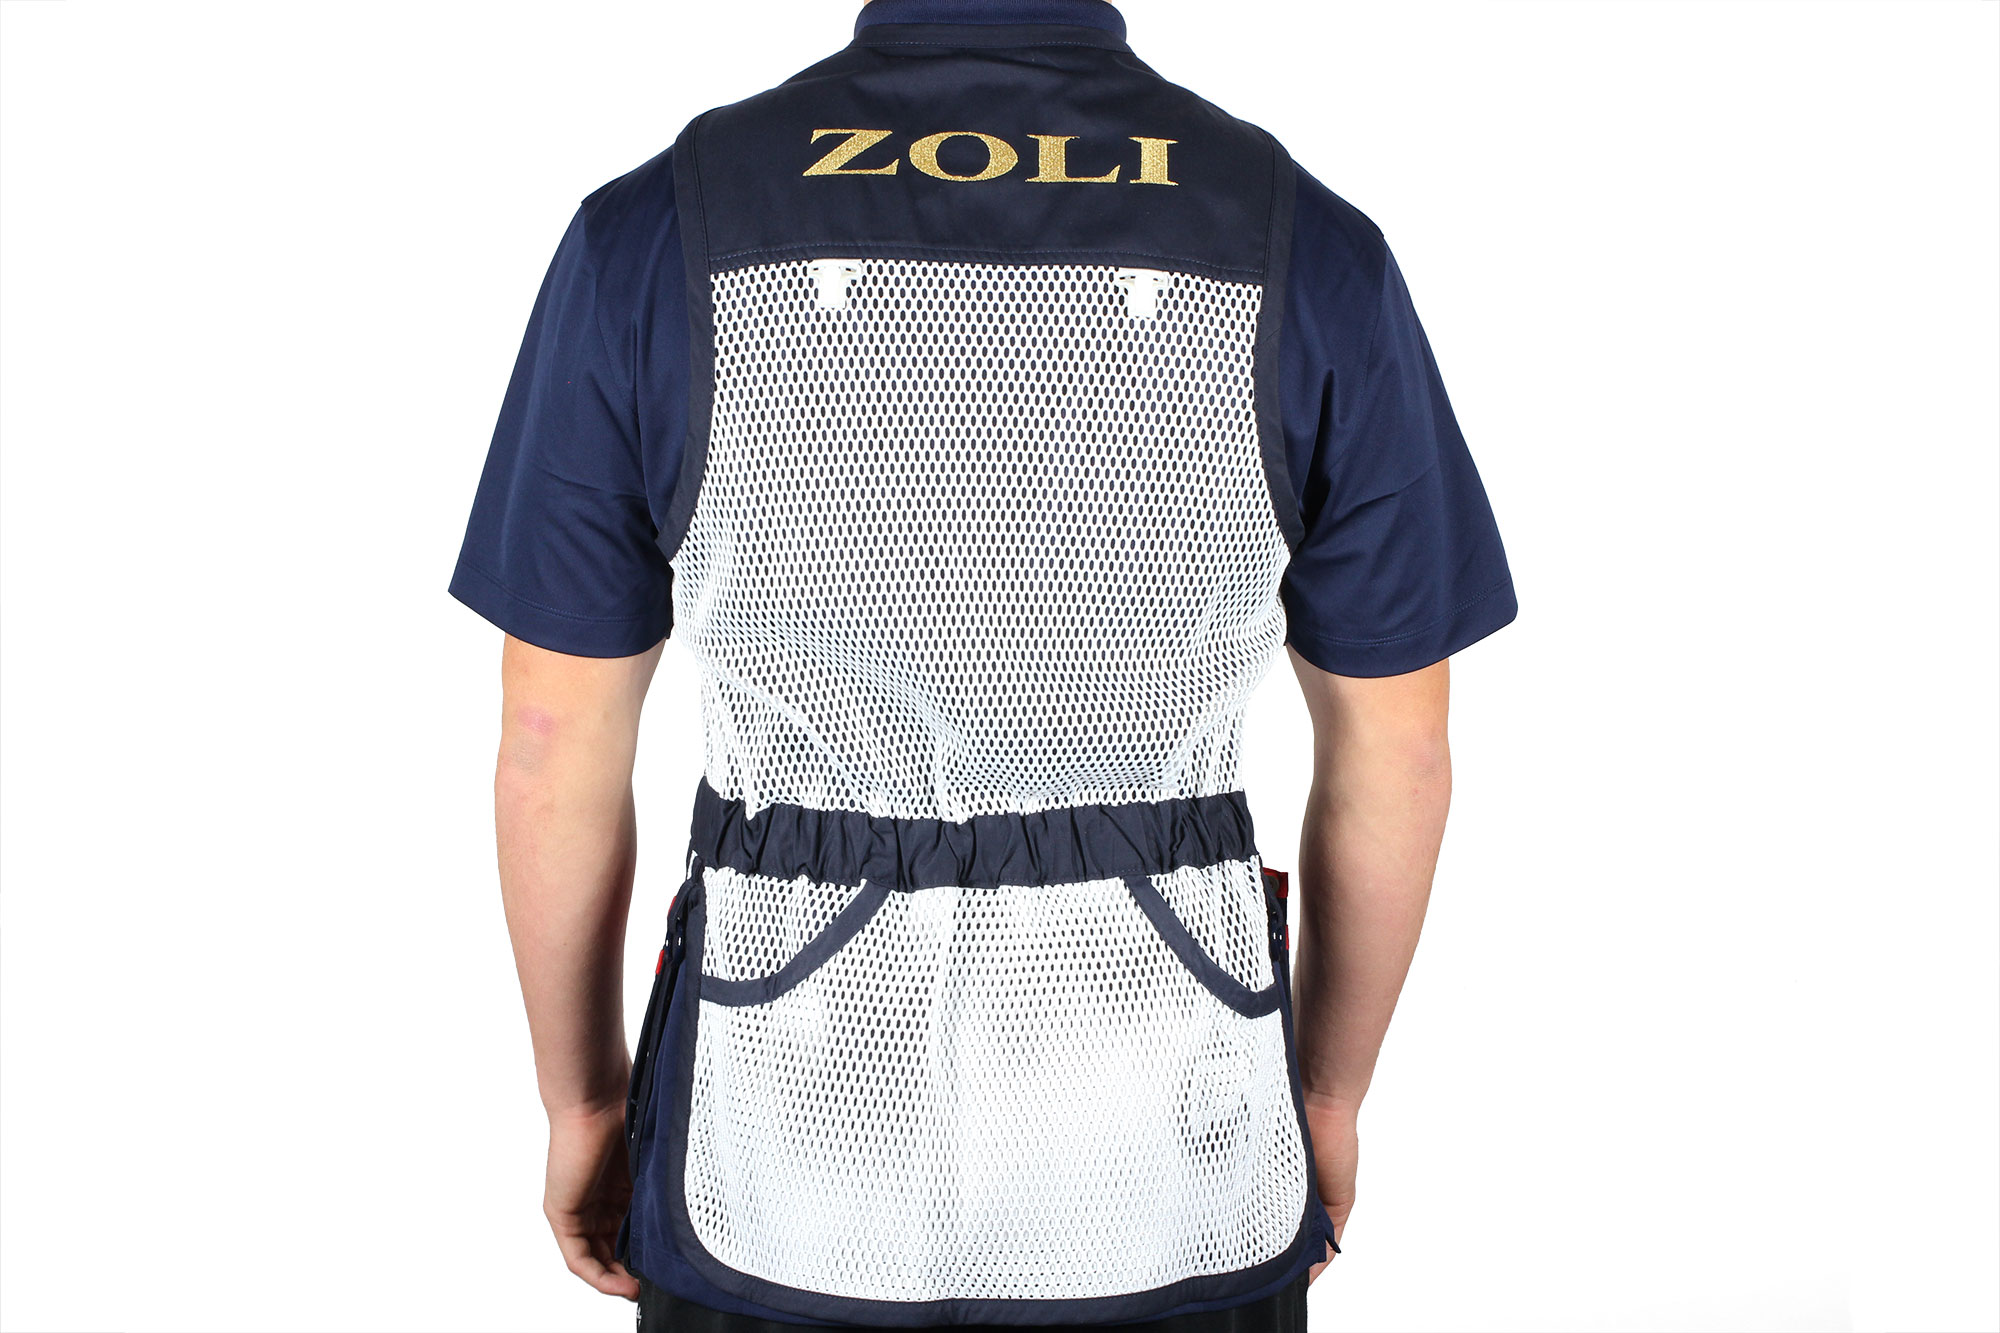 Zoli Shooter Vest By Castellani Back